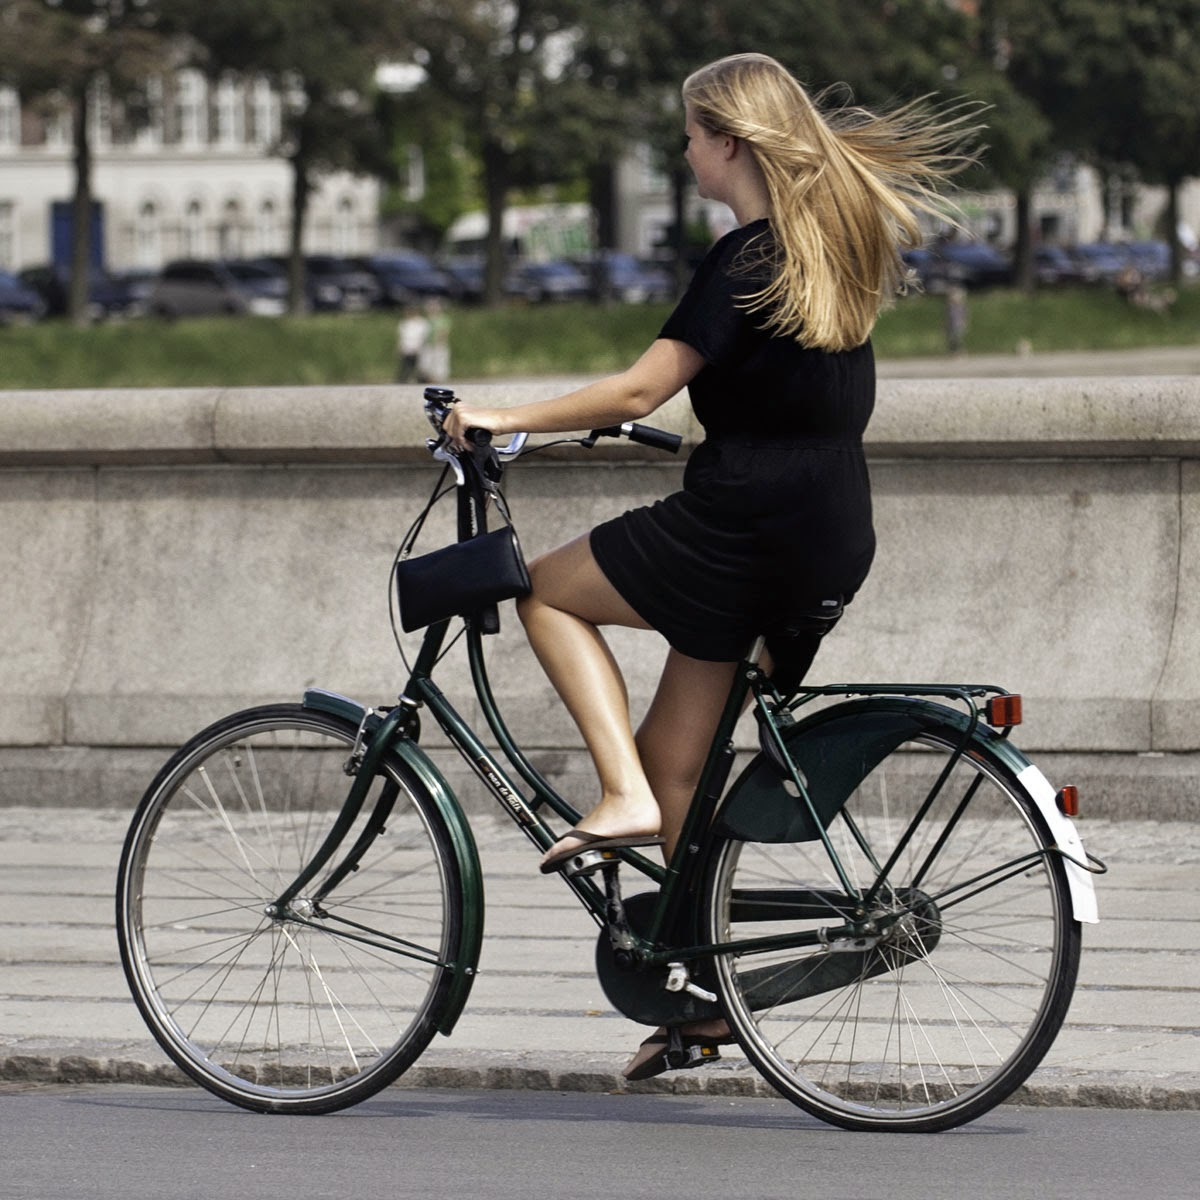 Fashionably dressed women go to work on bikes